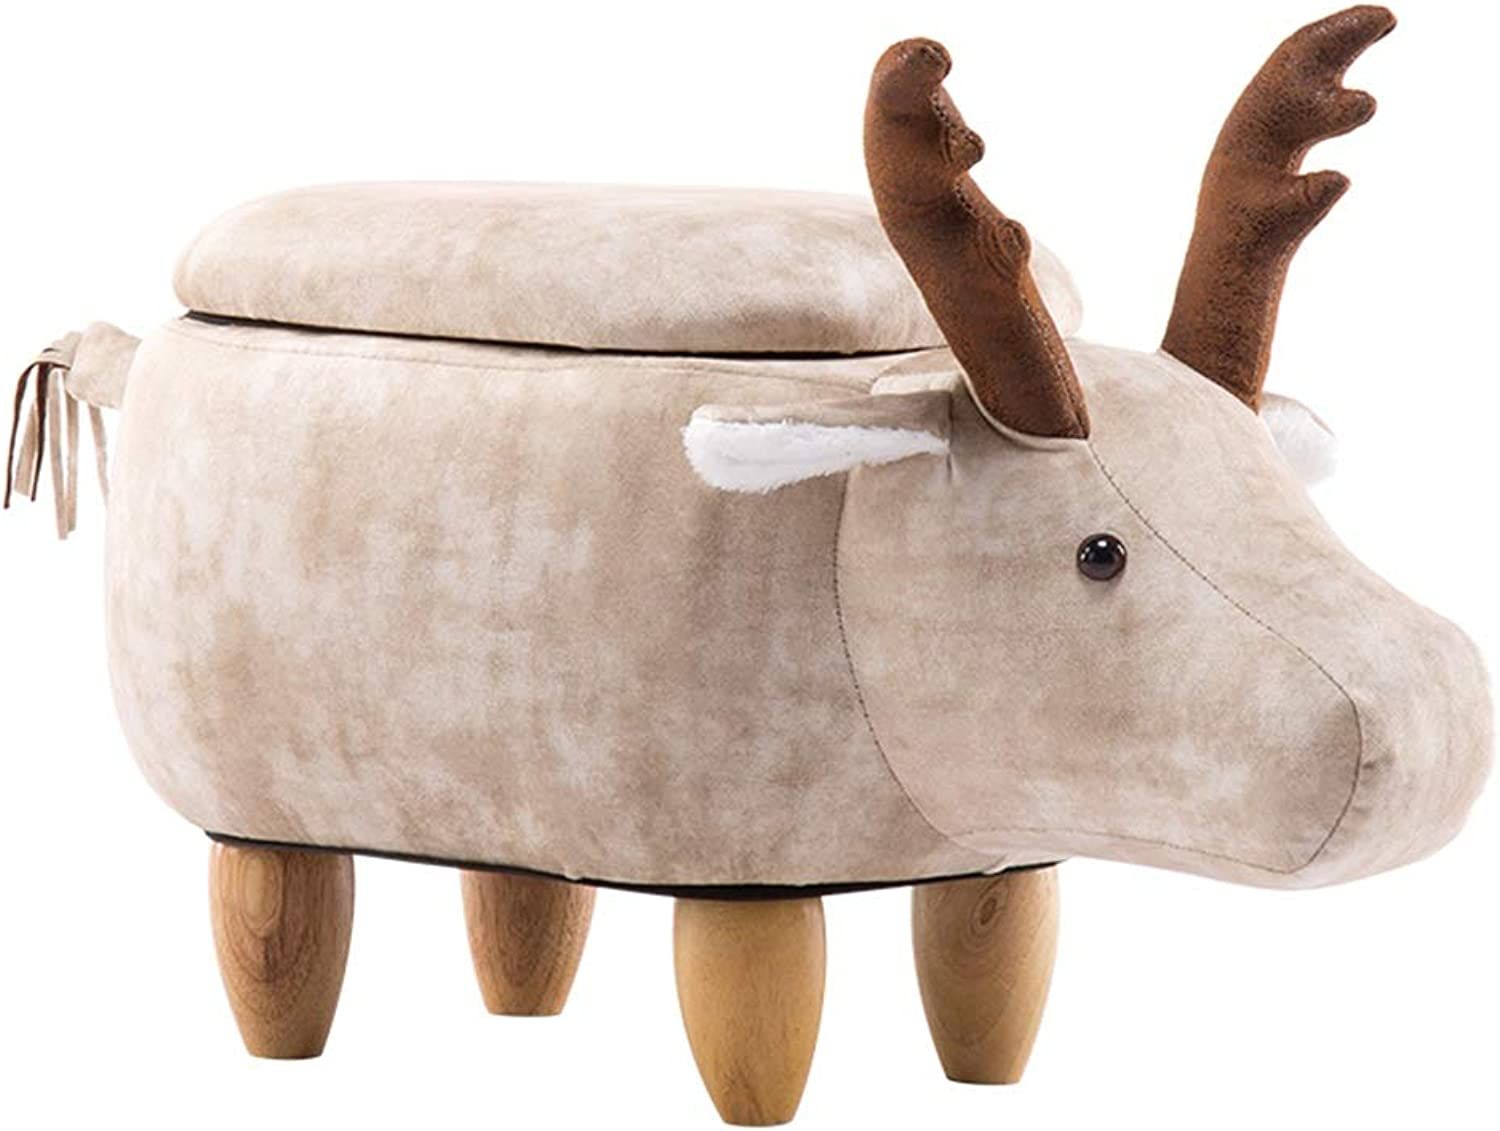 XF Hong Tai Yang Sofa Stool - - Creative solid wood deer sofa stool, small apartment, living room, home, adult soft seat back storage stool sofa bench (size 67X37X35CM)   (Size   Storage-Off-white)